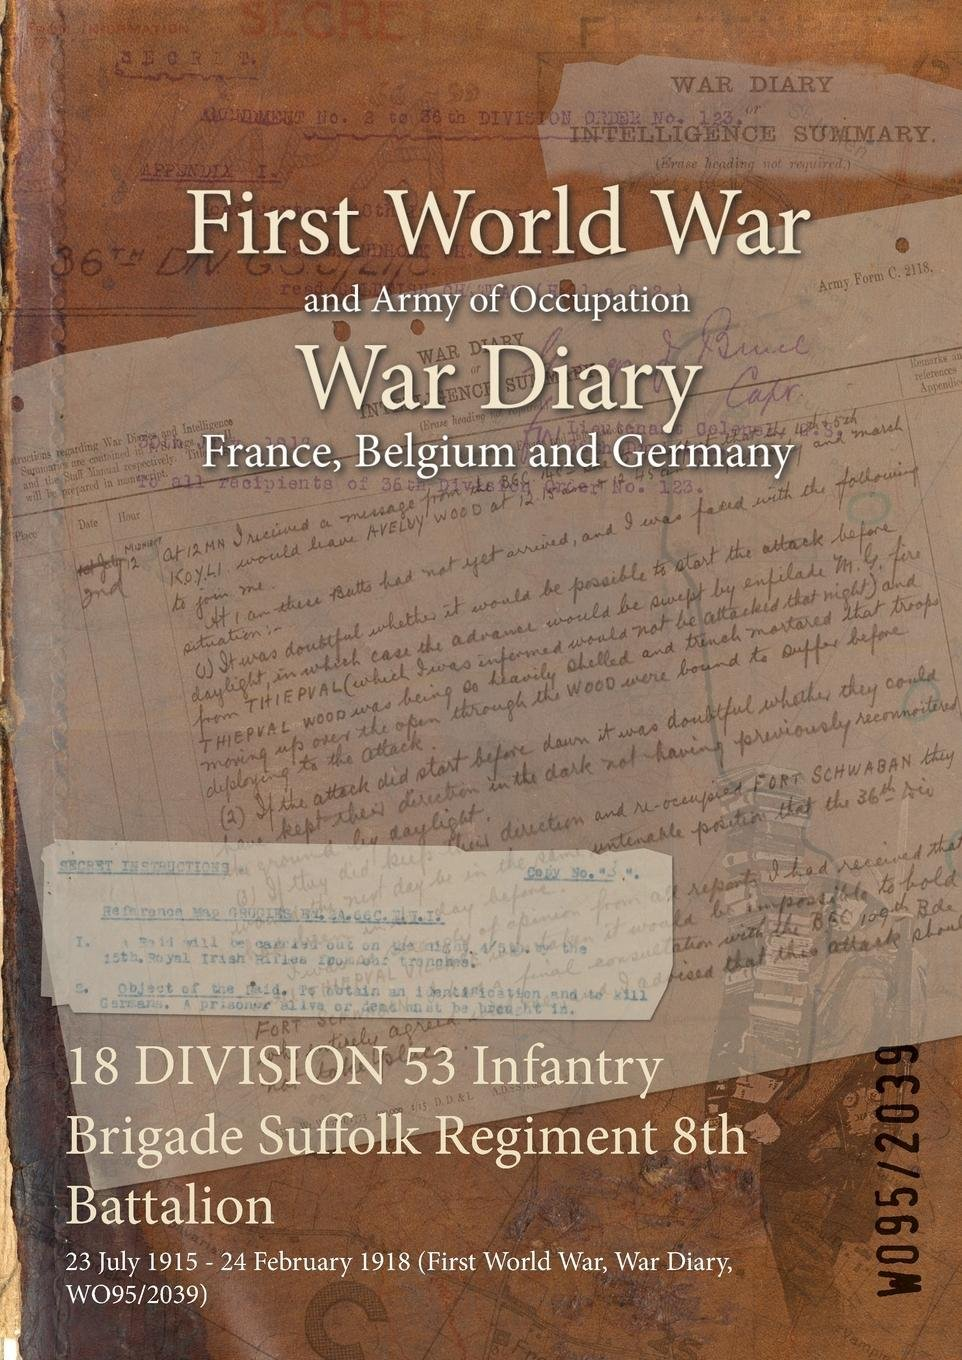 Download 18 Division 53 Infantry Brigade Suffolk Regiment 8th Battalion: 23 July 1915 - 24 February 1918 (First World War, War Diary, Wo95/2039) PDF